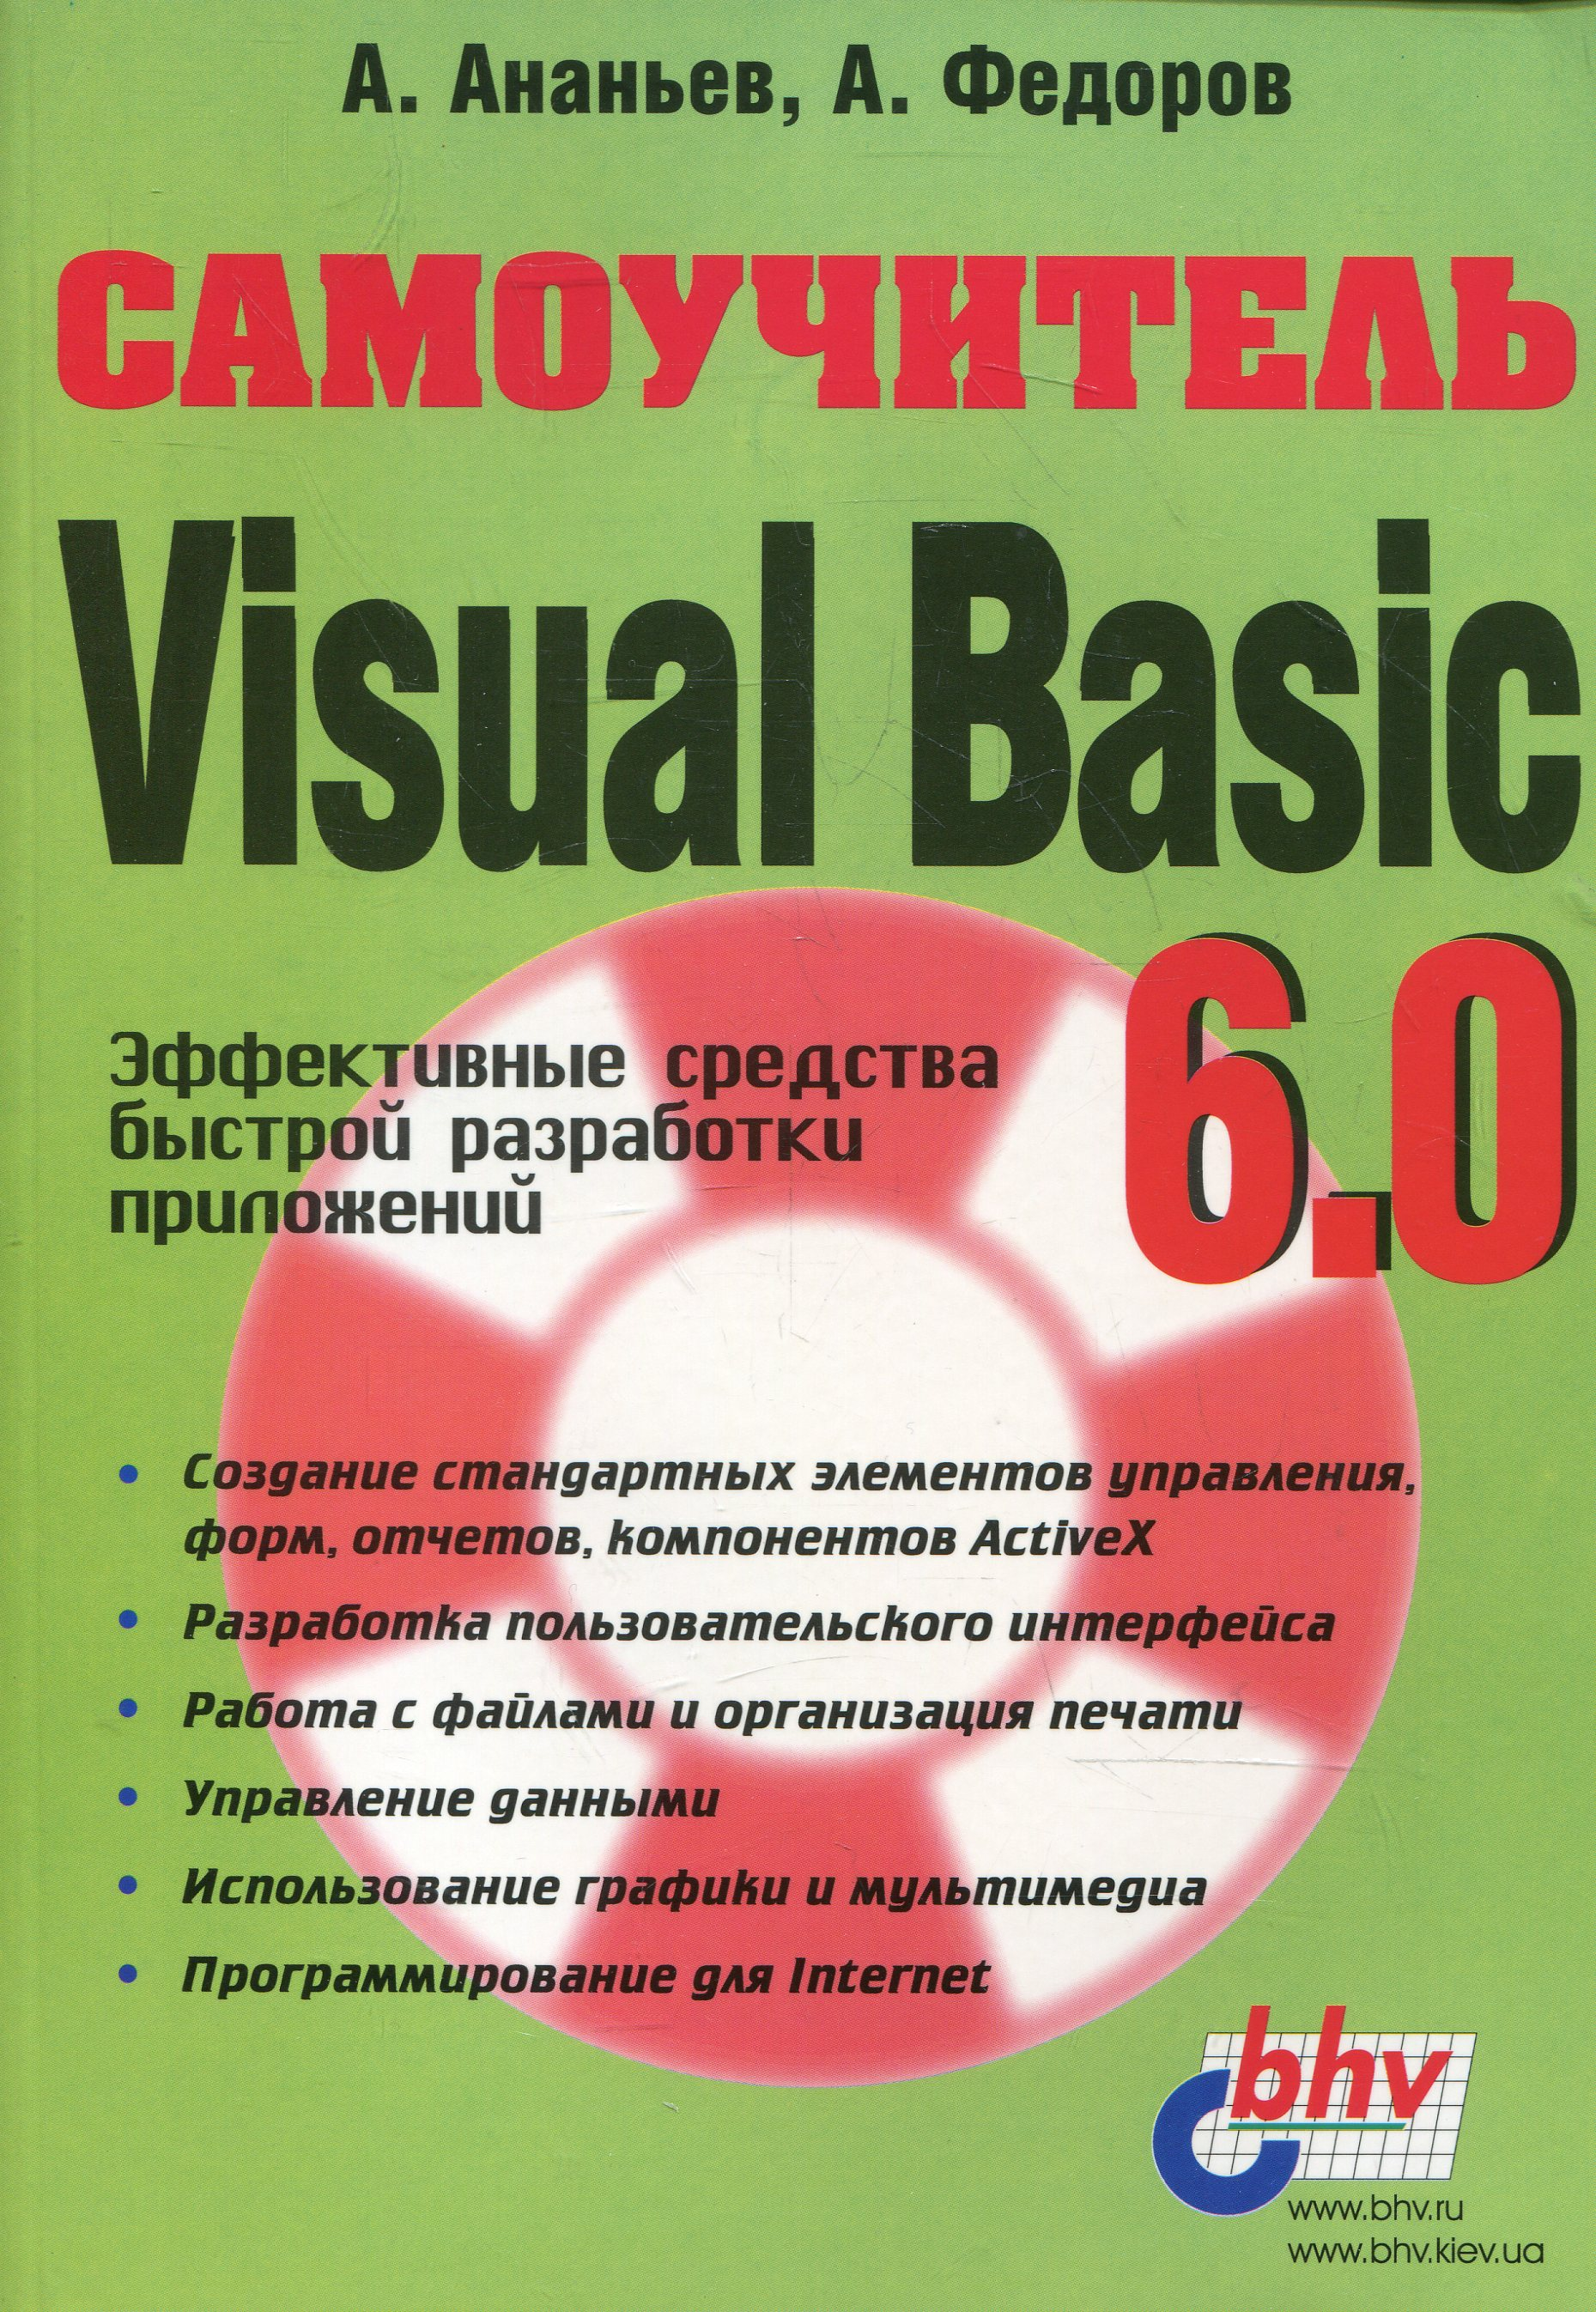 Самоучитель Visual Basic 6.0